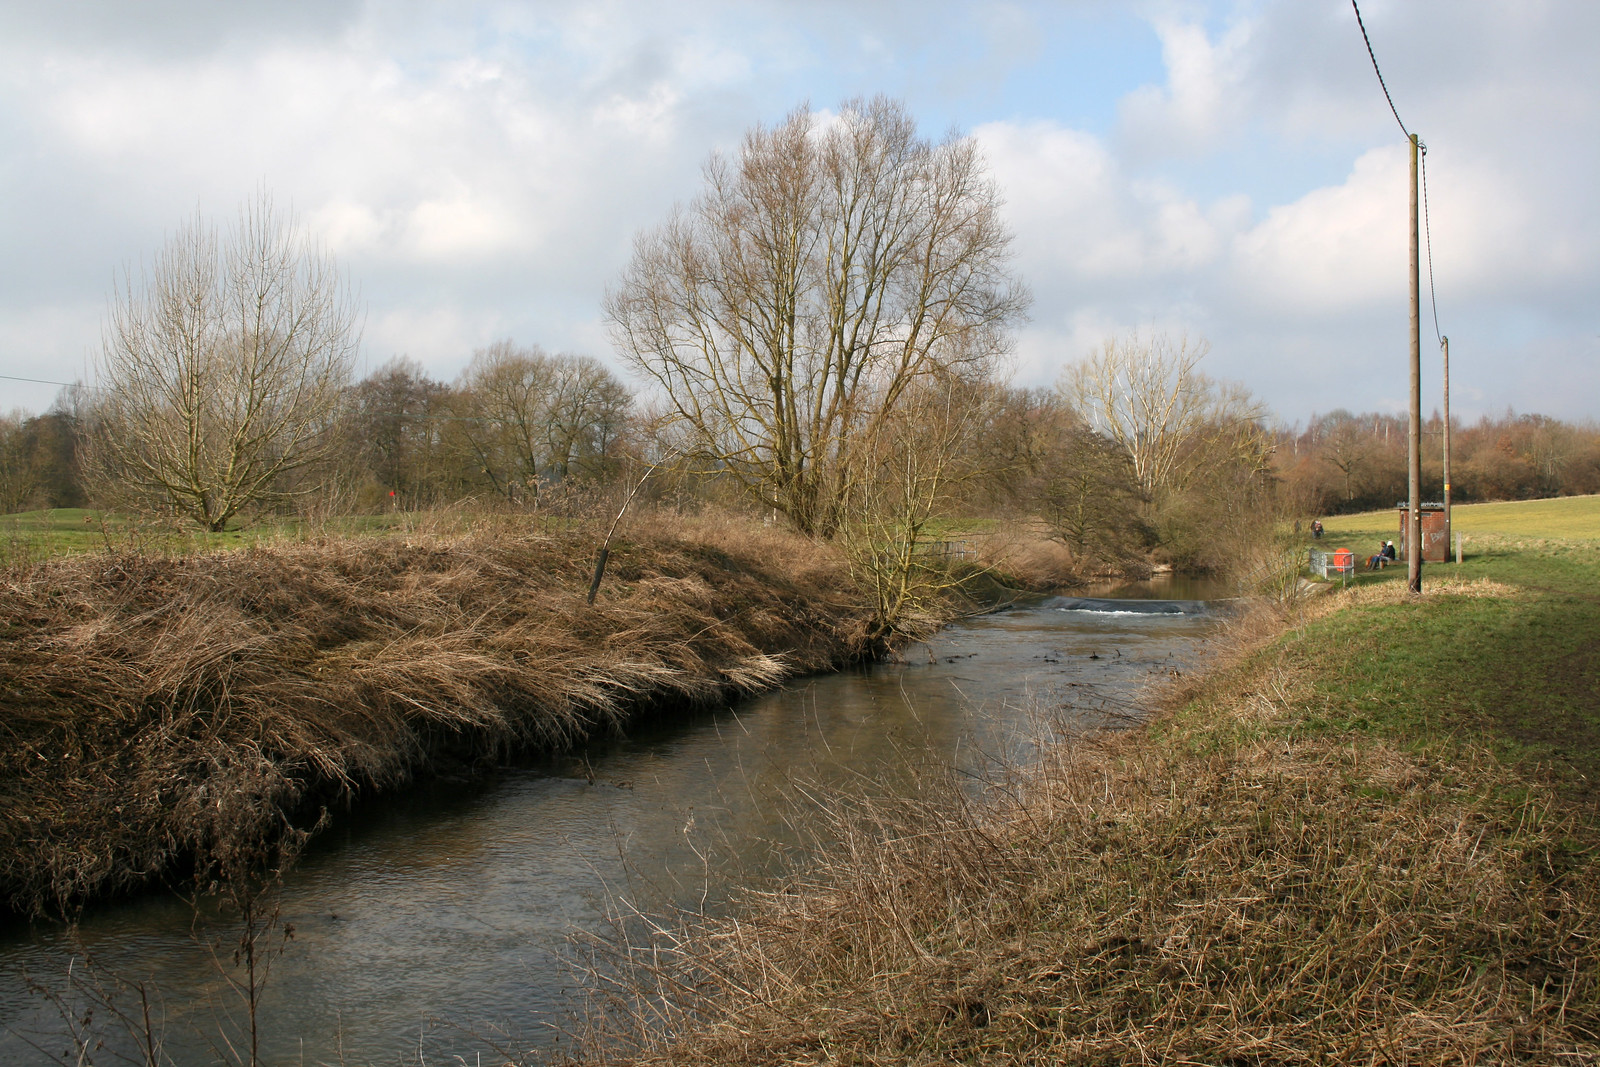 The River Colne near Earls Colne